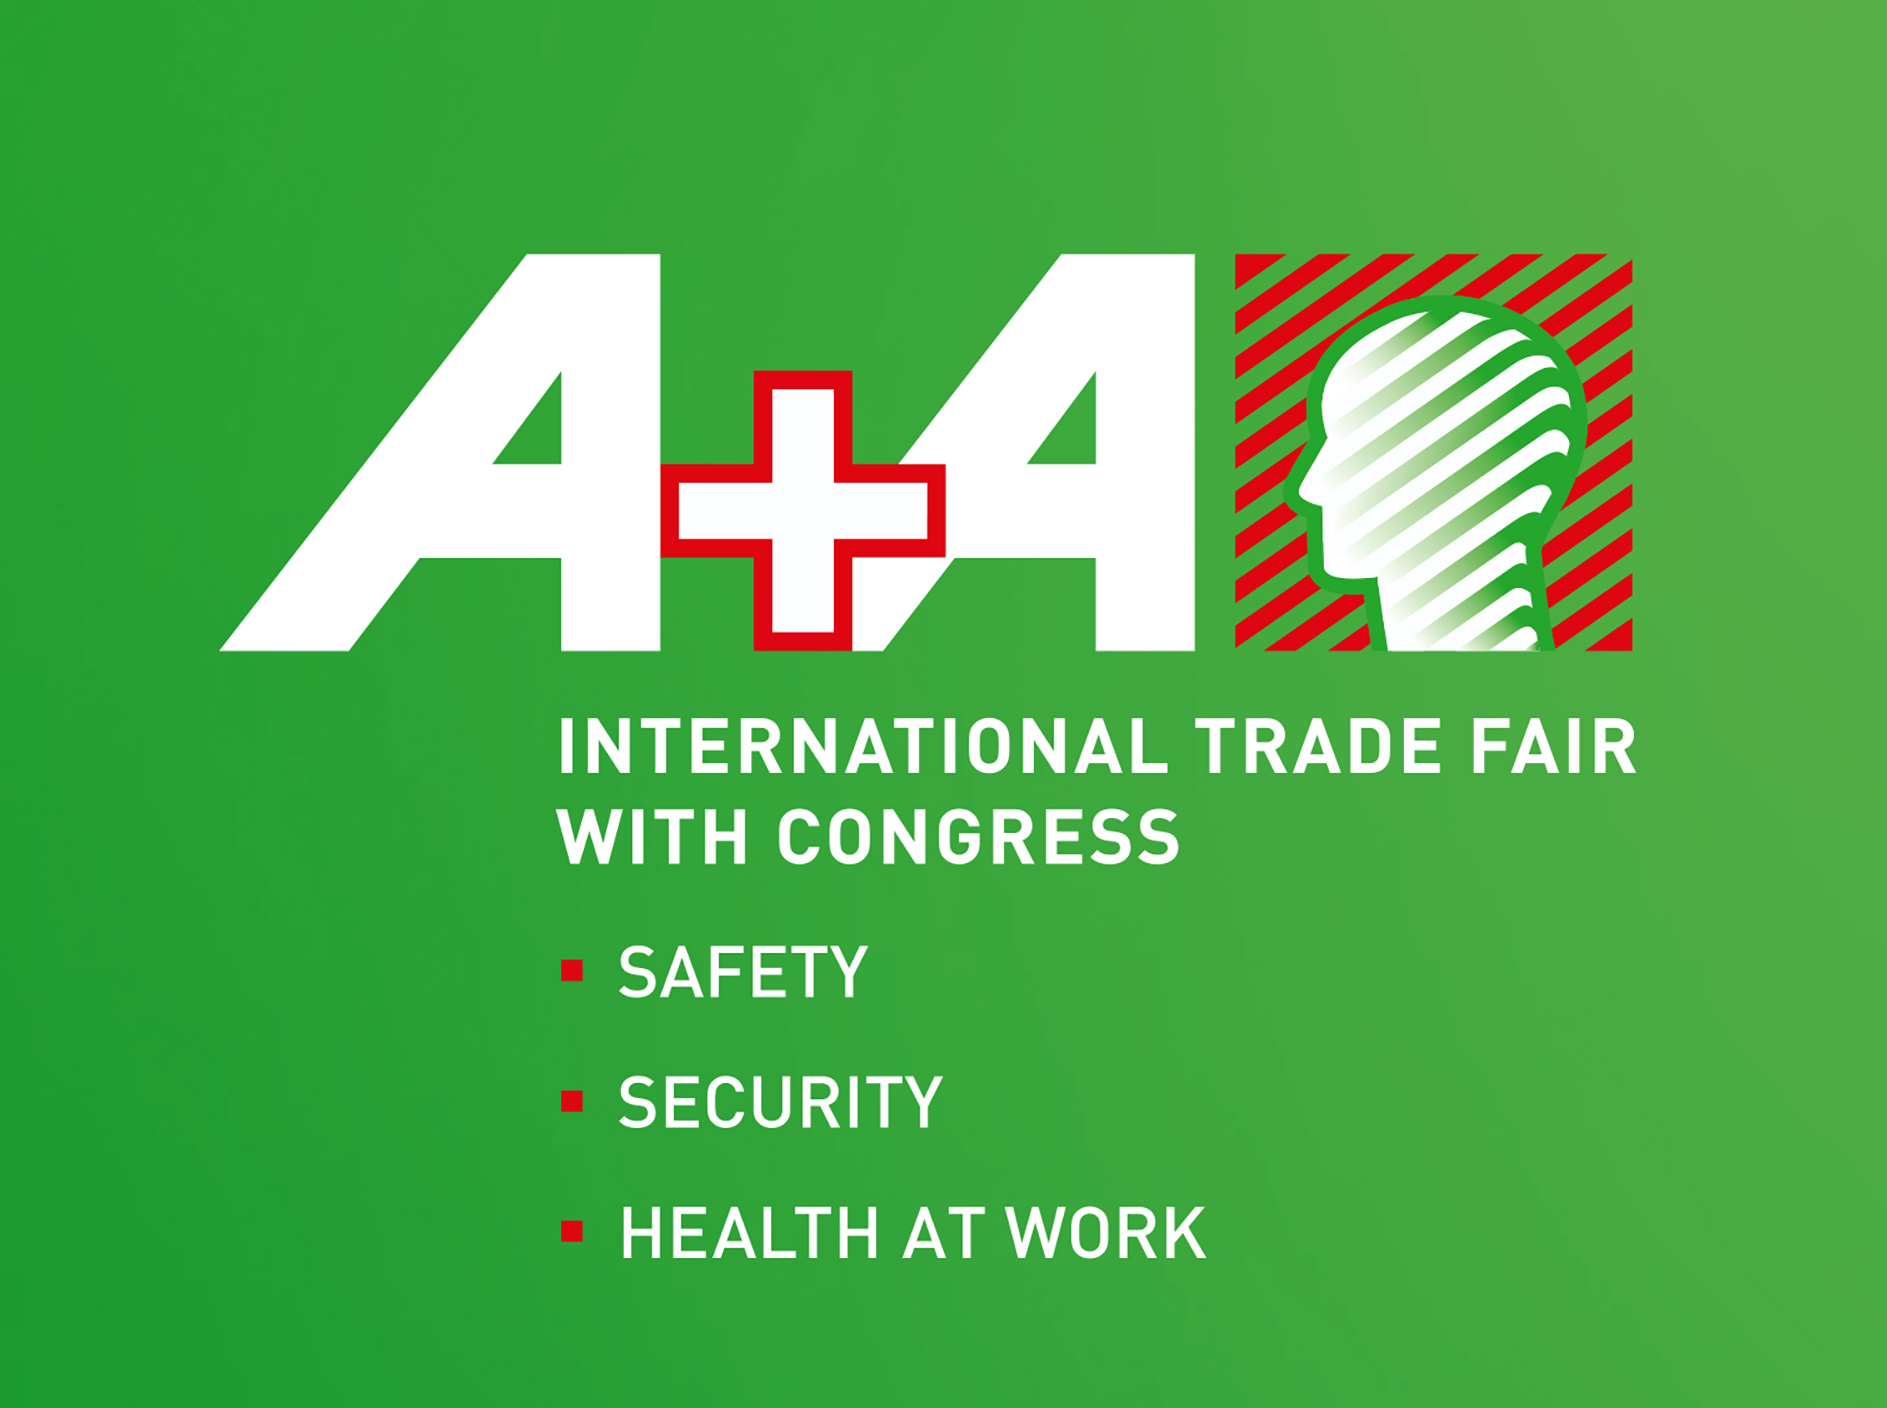 On 26-29 October 2021, the top national and international decision-makers will meet up once again in Düsseldorf for the world's No.1 Trade Fair for Safety, Security and Health at Work.